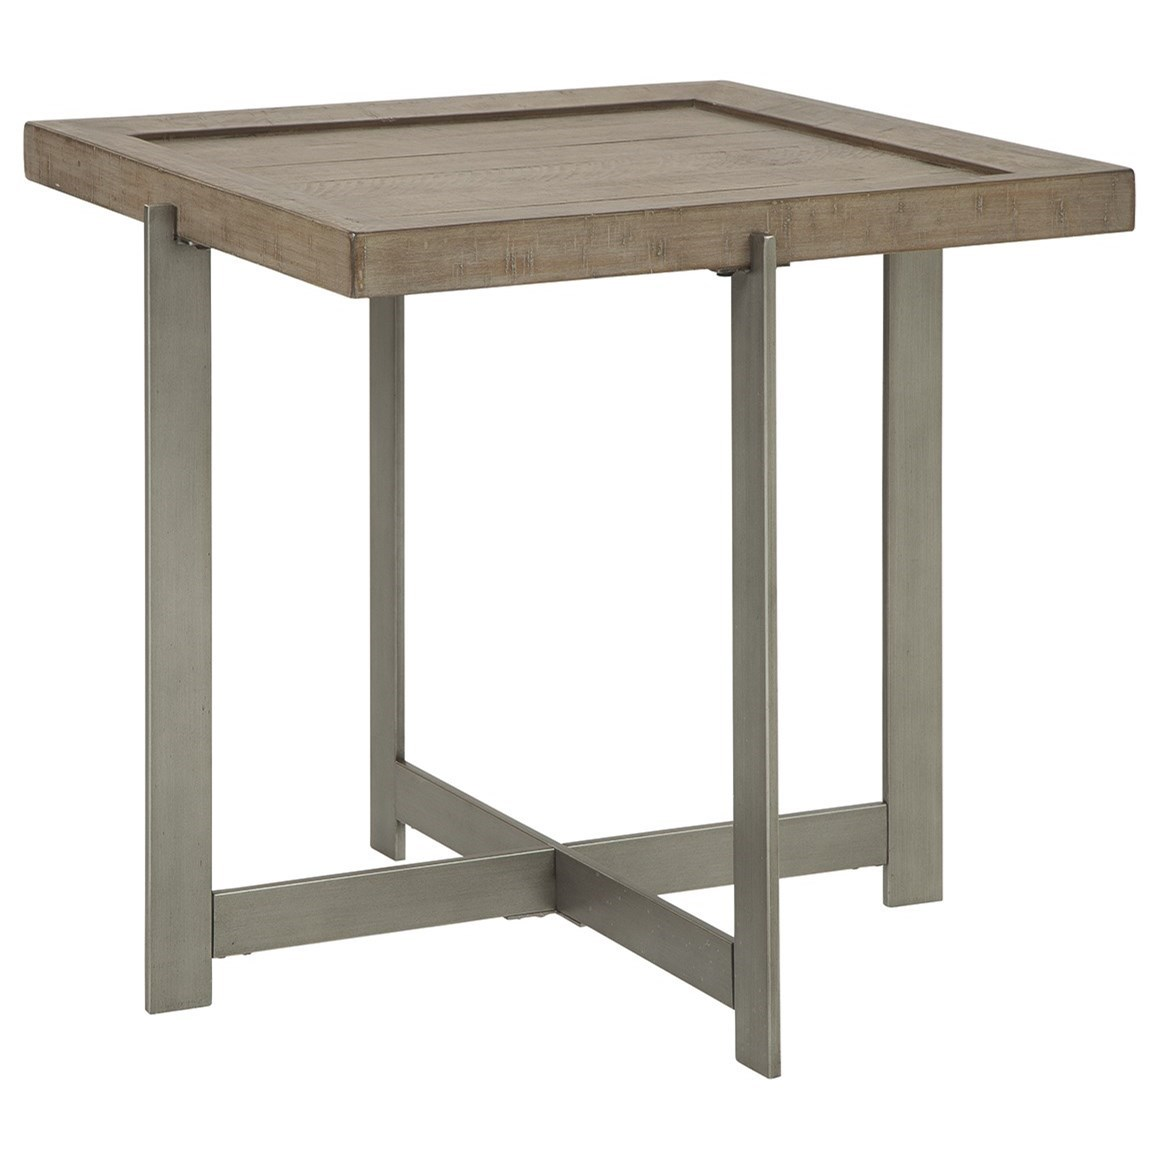 Krystanza End Table by Signature Design by Ashley at Beck's Furniture